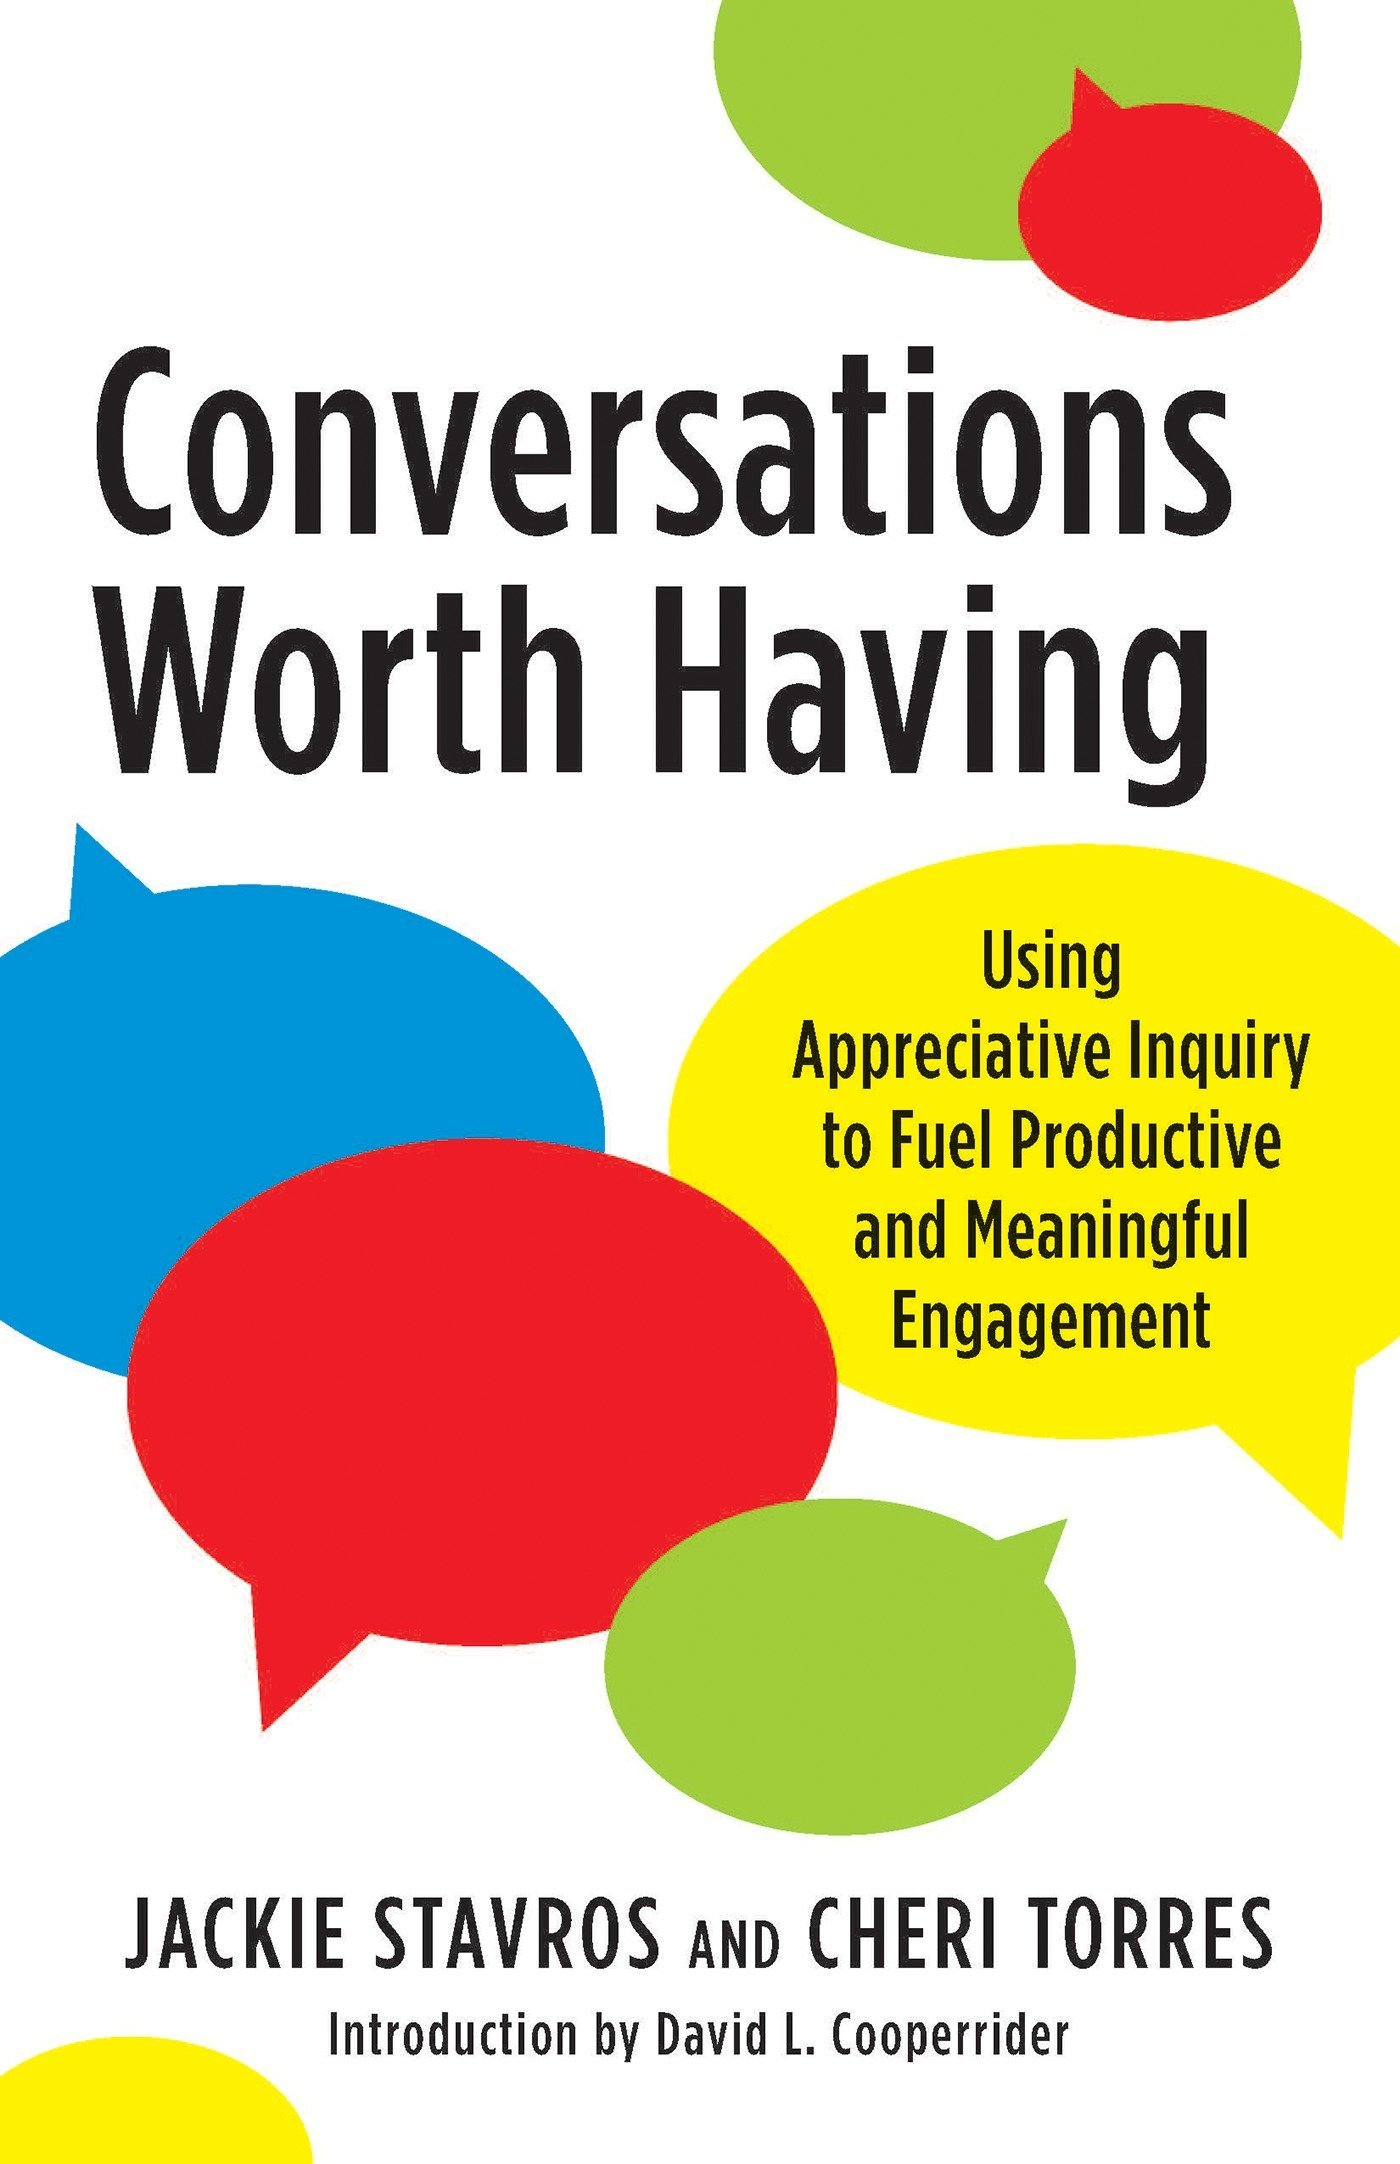 ... Appreciative Inquiry to Fuel Productive and Meaningful Engagement  (9781523094011): Jacqueline M. Stavros, Cheri Torres, David L. Cooperrider:  Books